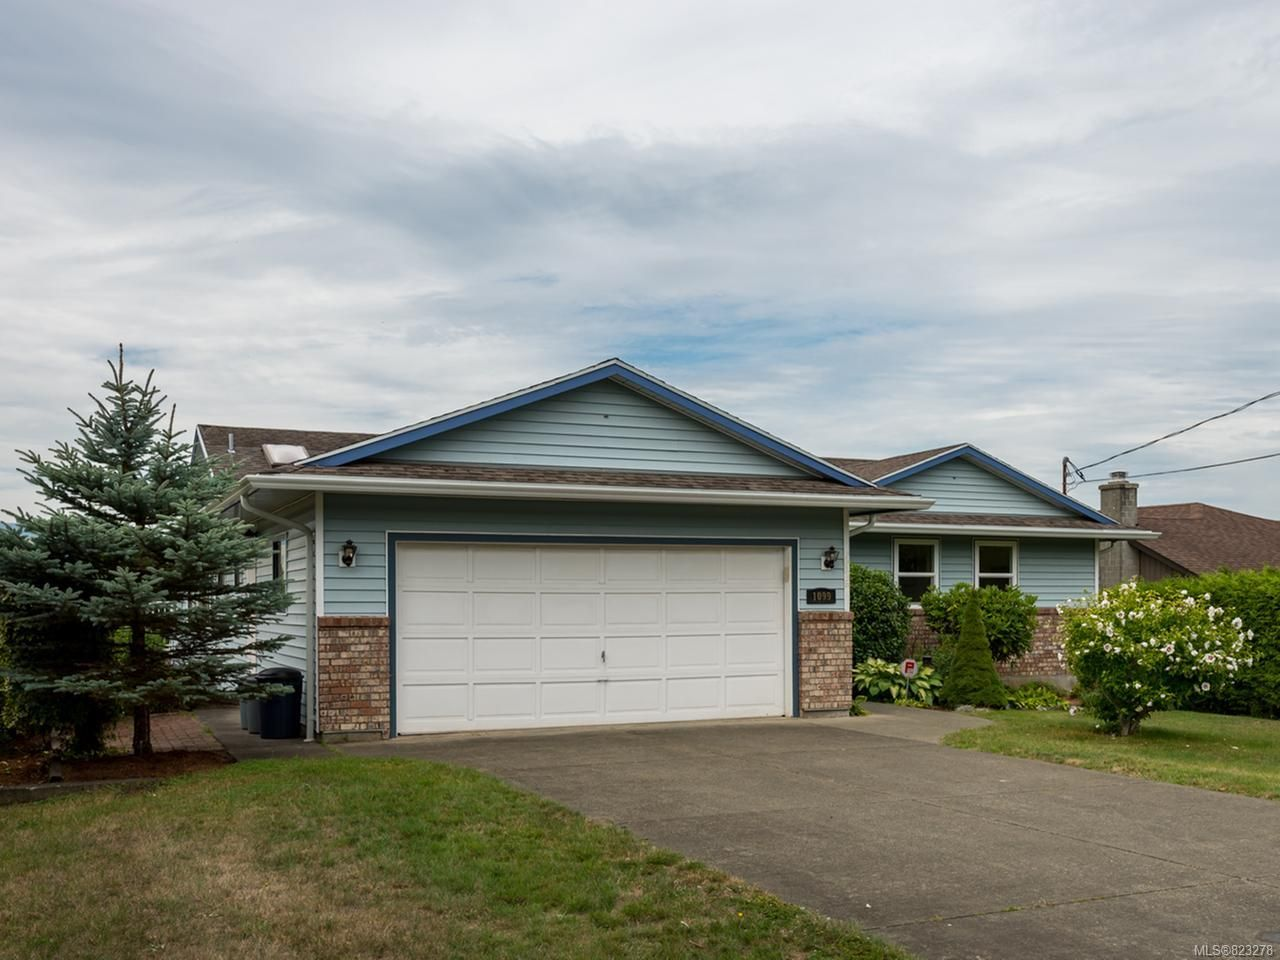 Photo 6: Photos: 1099 Williams Rd in COURTENAY: CV Courtenay East House for sale (Comox Valley)  : MLS®# 823278